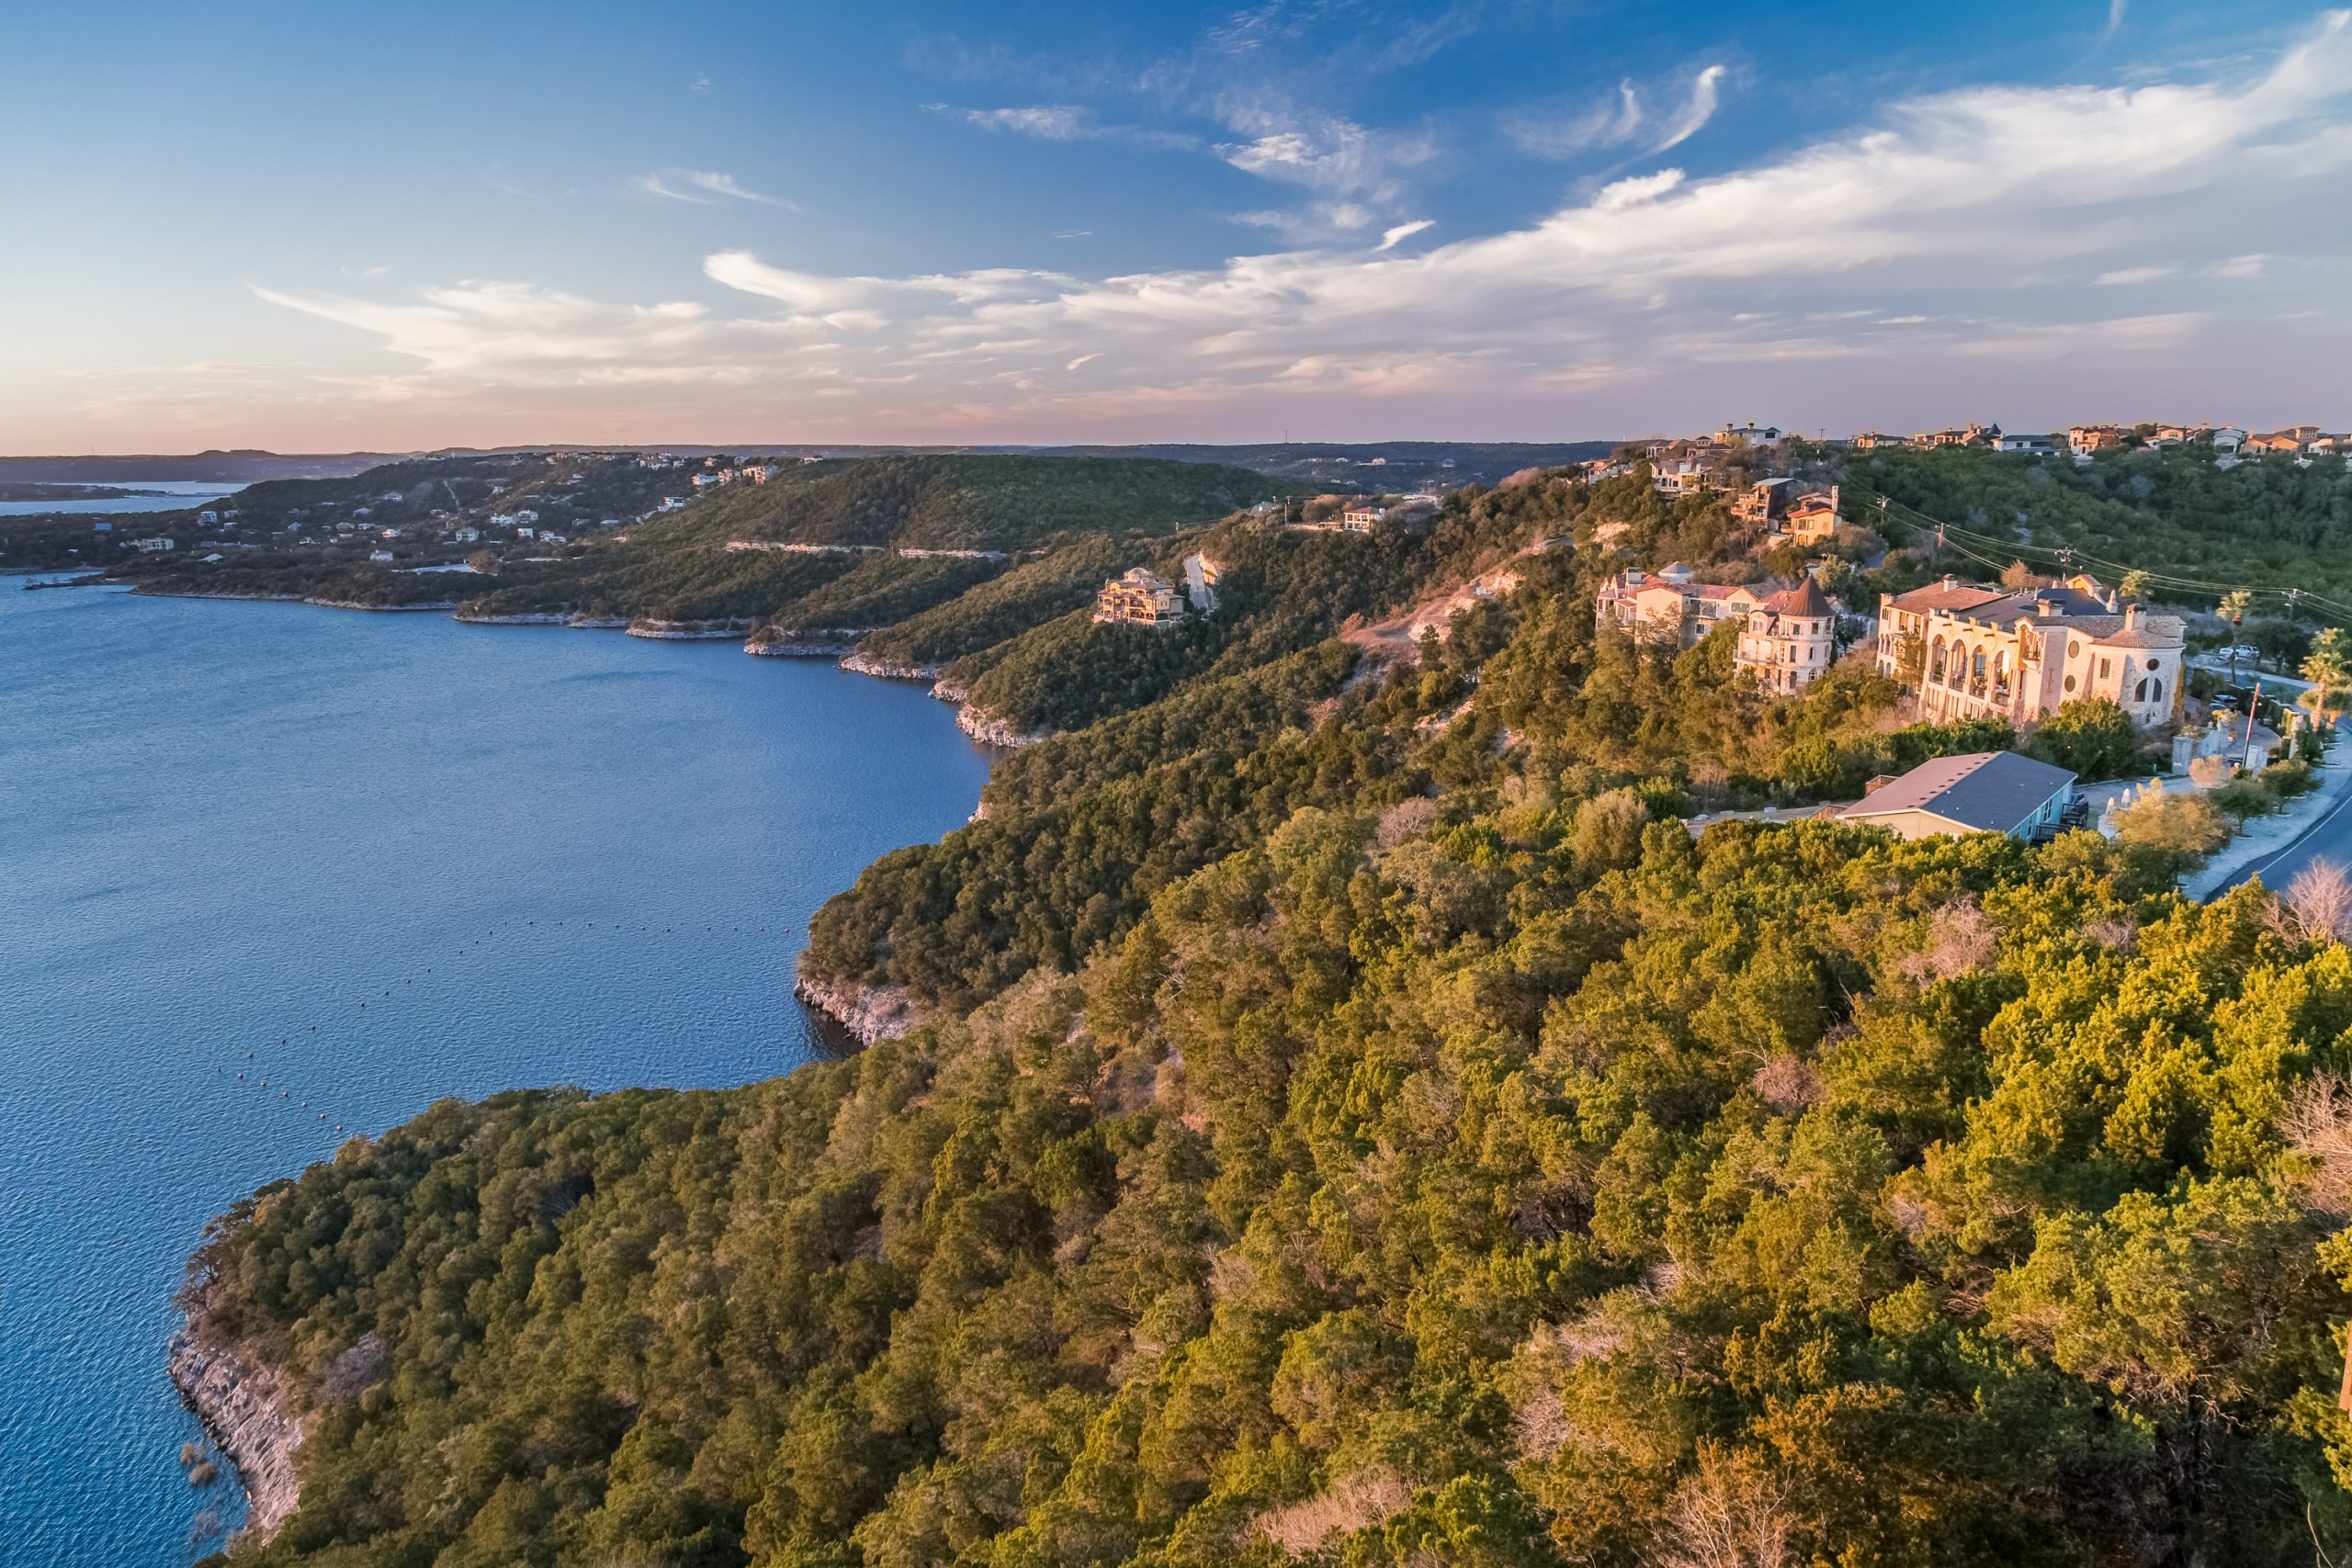 View of Lake Travis Austin Texas from above with green cliffs on the right and blue water on the left